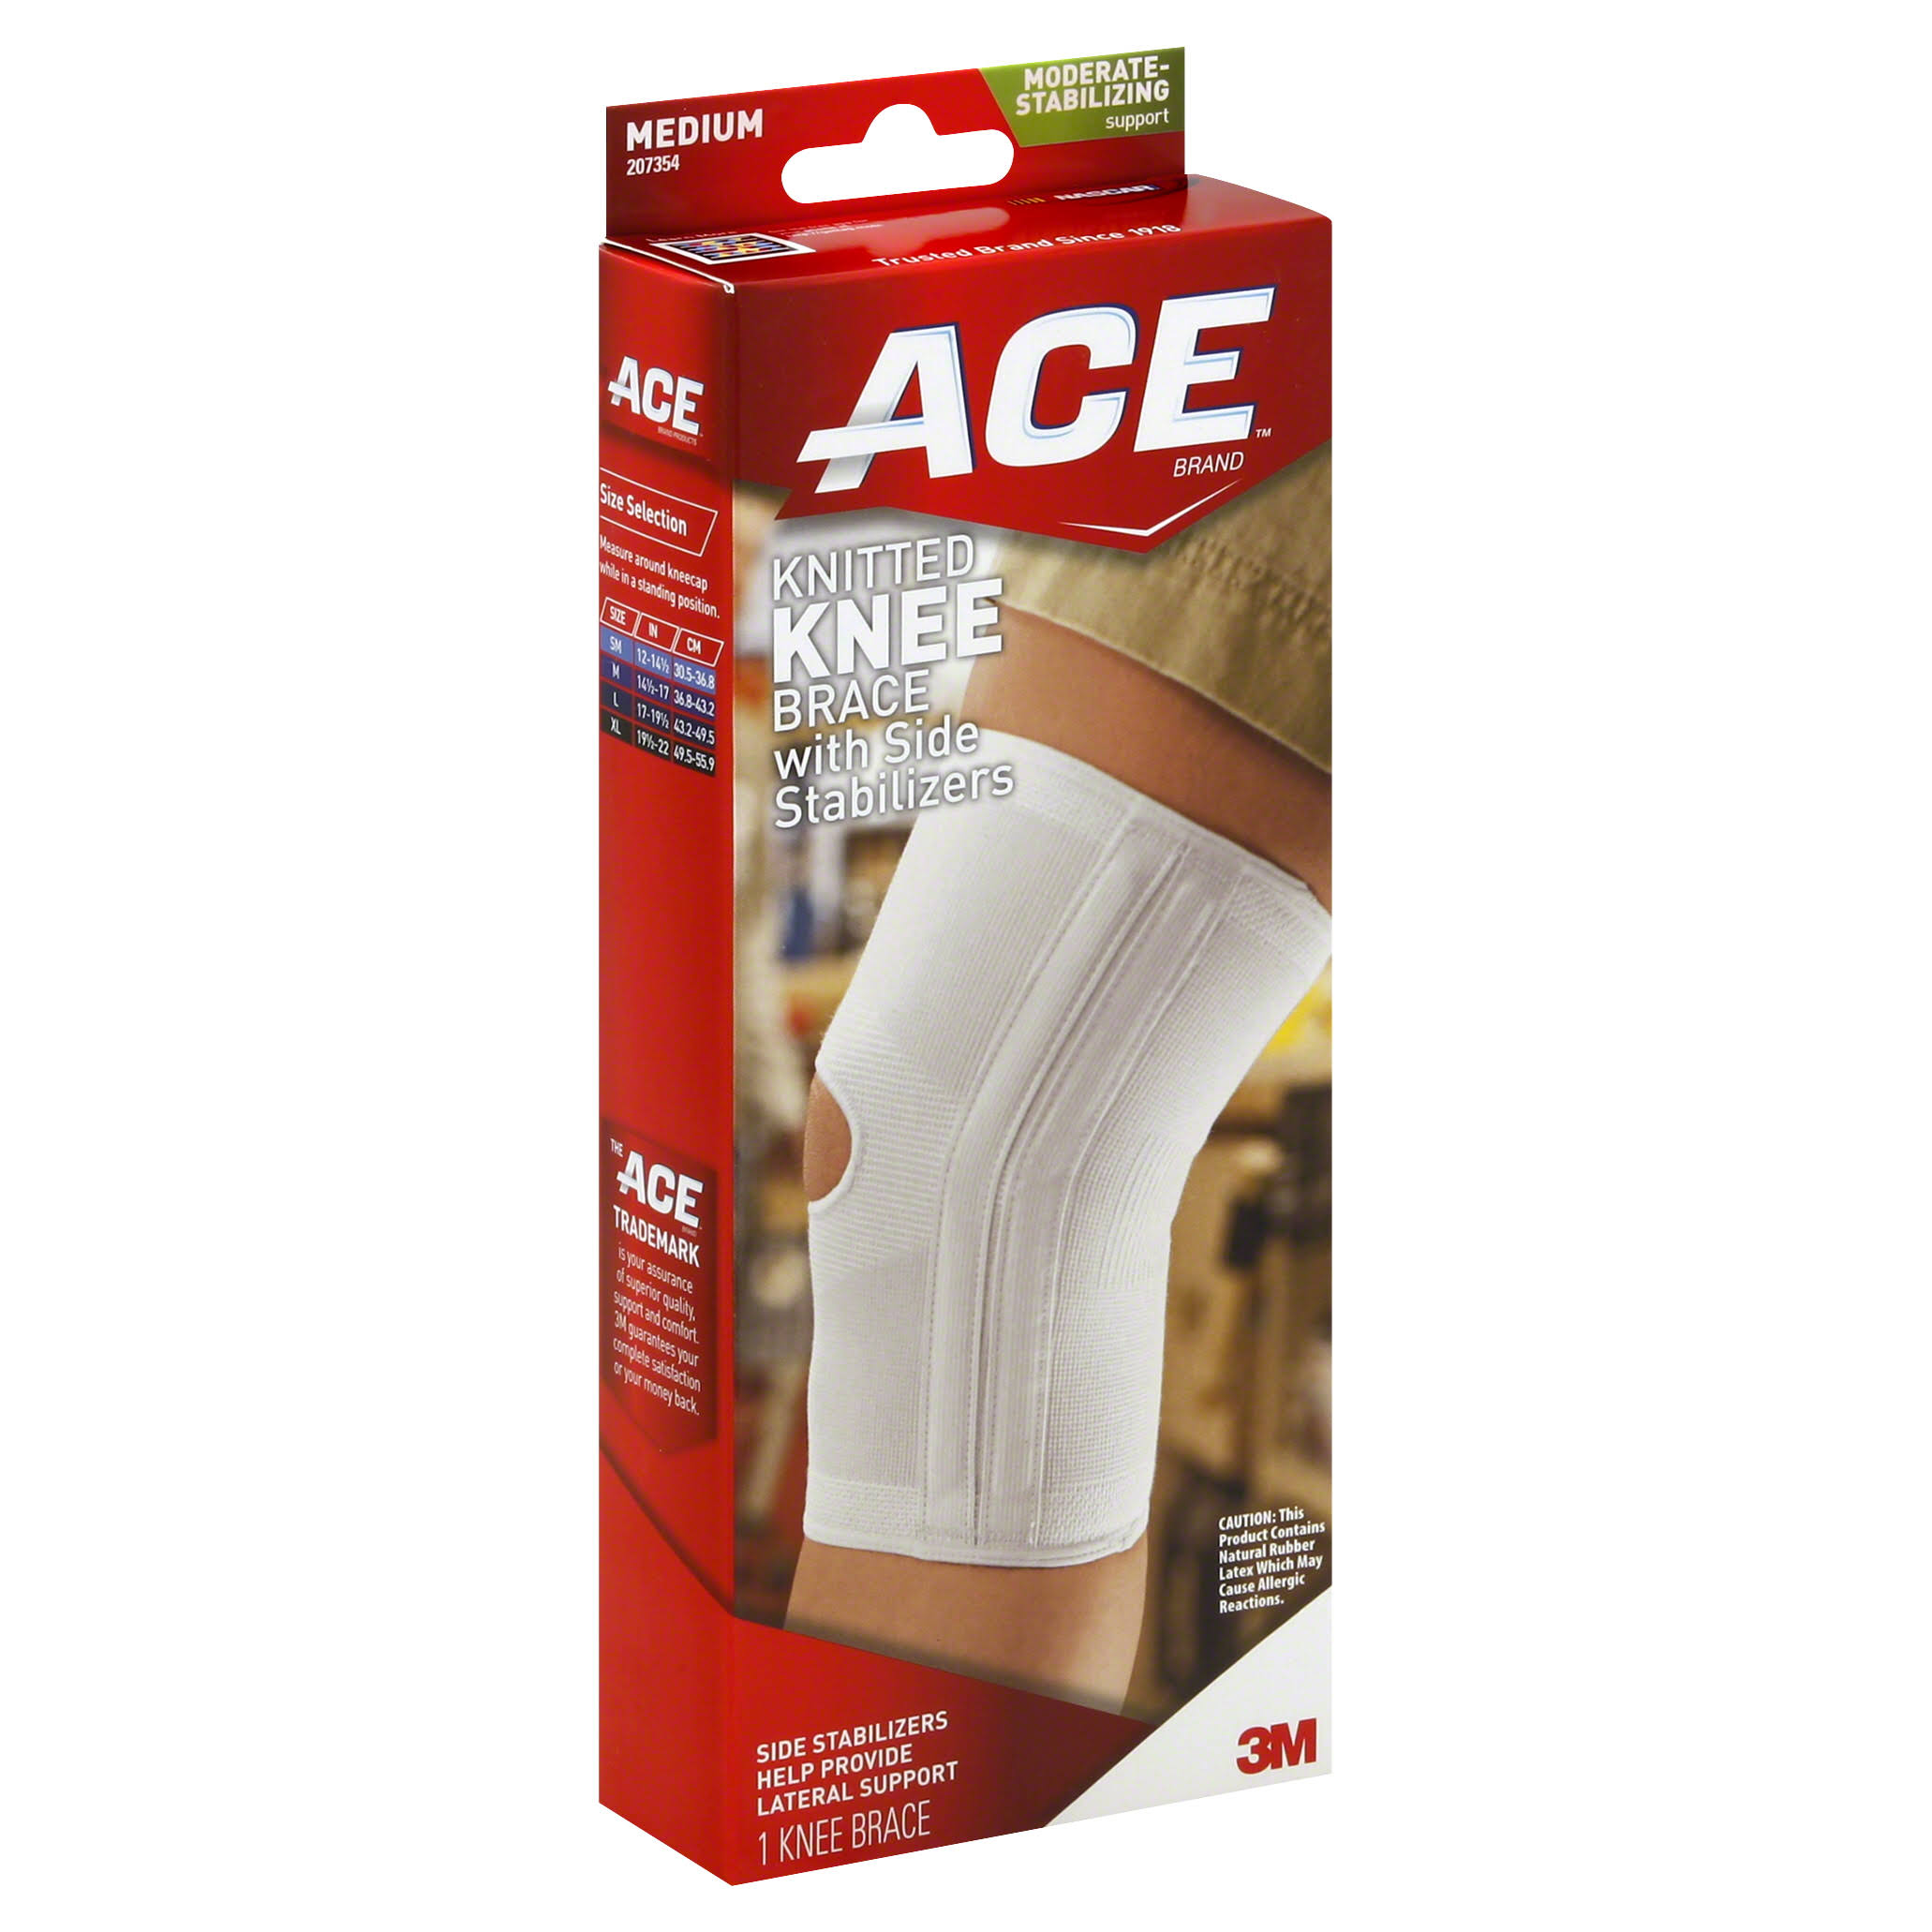 Ace Size M Compression Knee Brace with Side Stabilizers - Medium